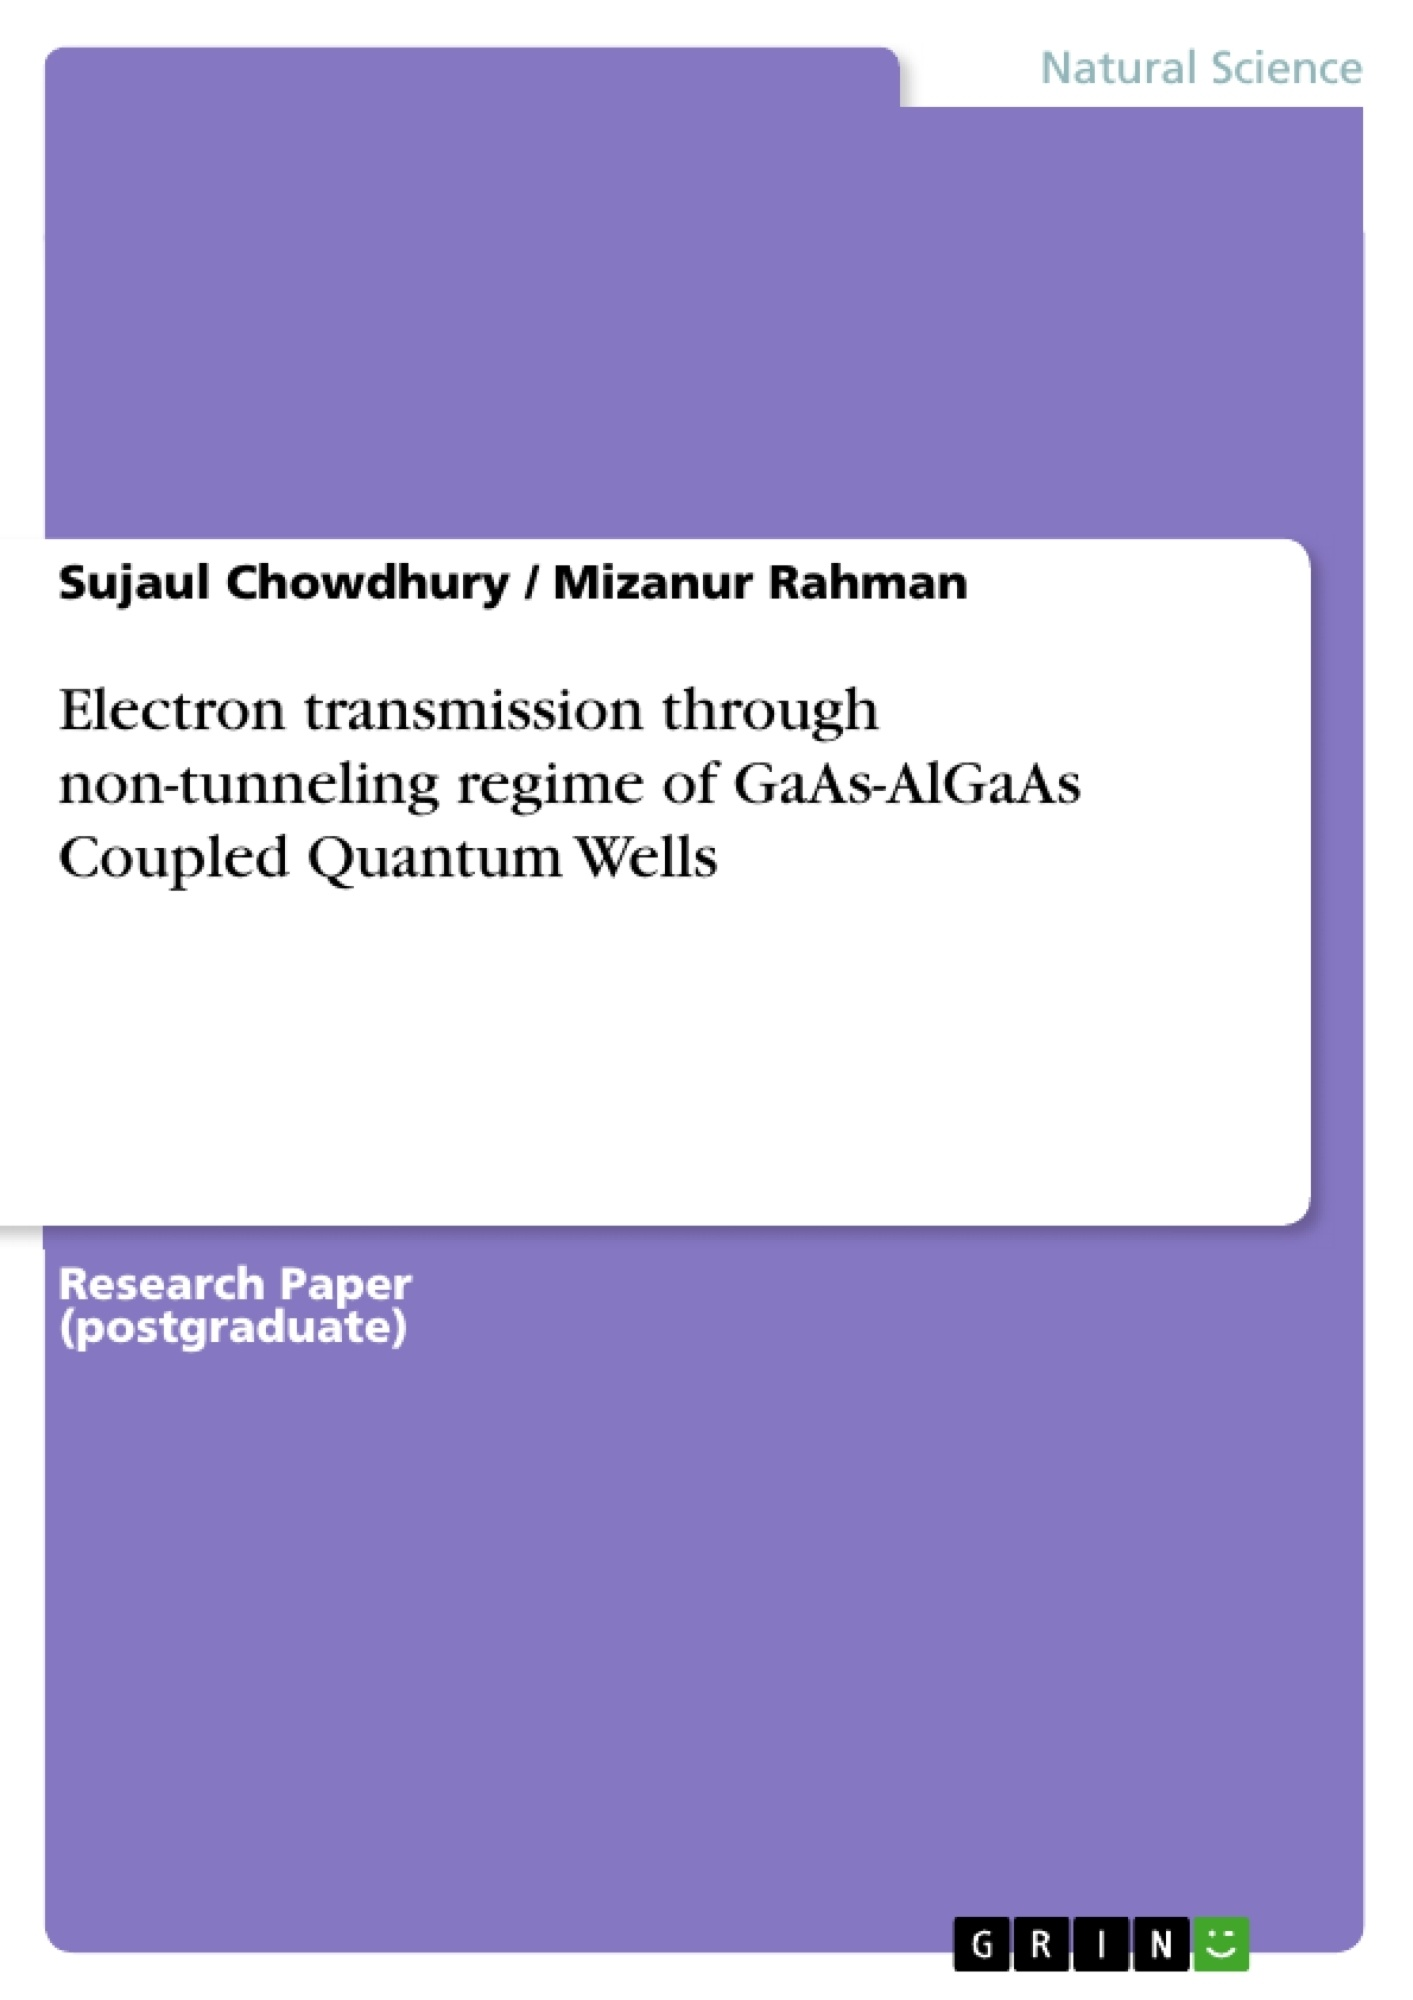 Title: Electron transmission through non-tunneling regime of GaAs-AlGaAs Coupled Quantum Wells